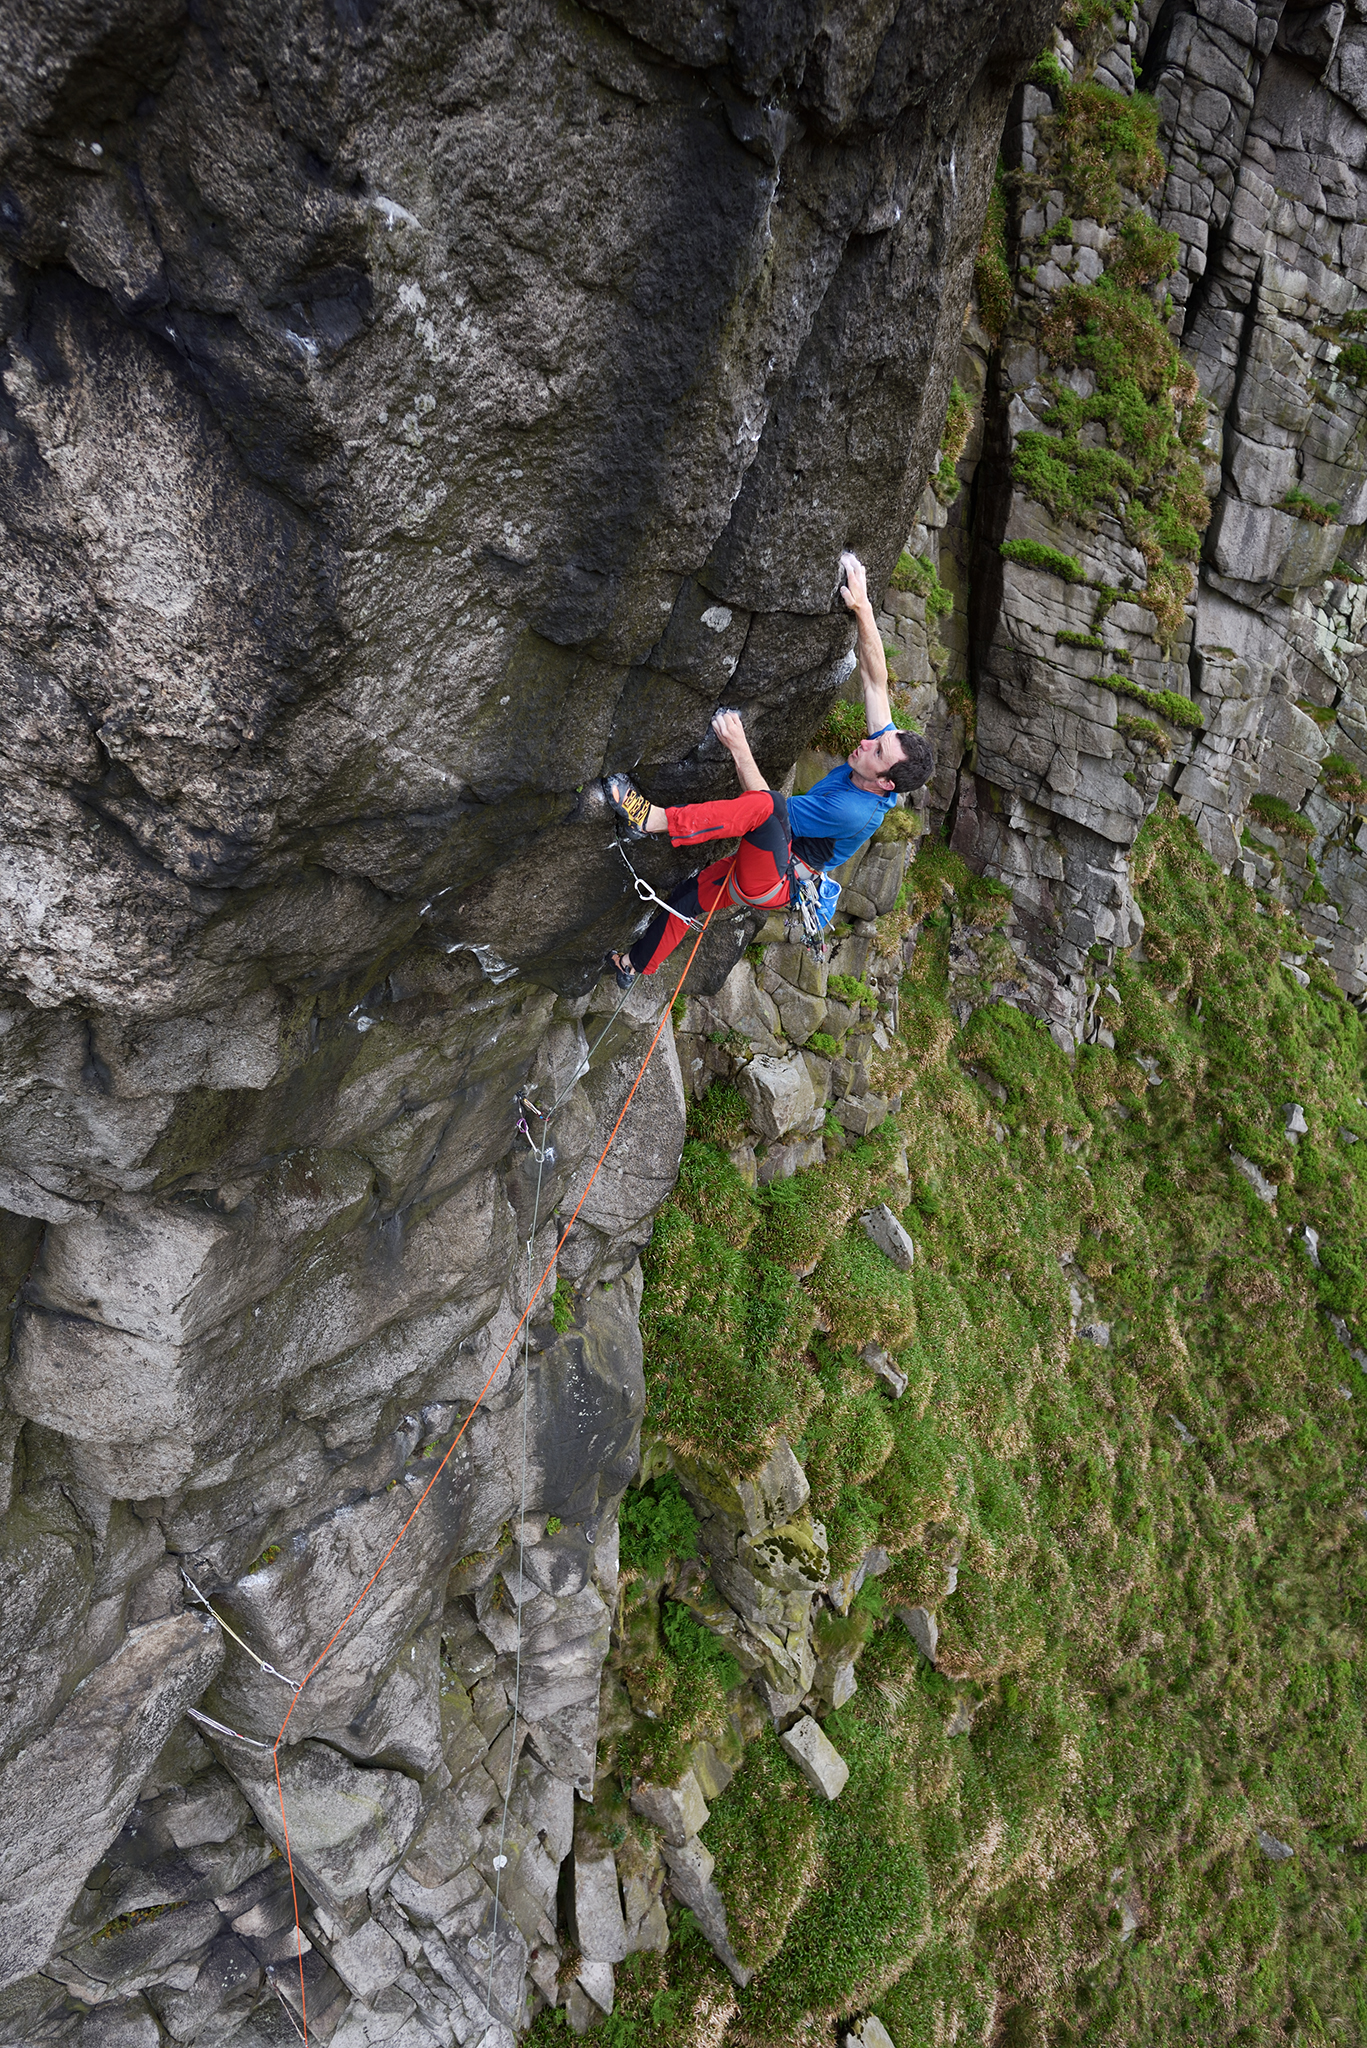 James McHaffie on first ground-up ascent of Divided Years E8 7a, Mourne Mountains, N.Ireland